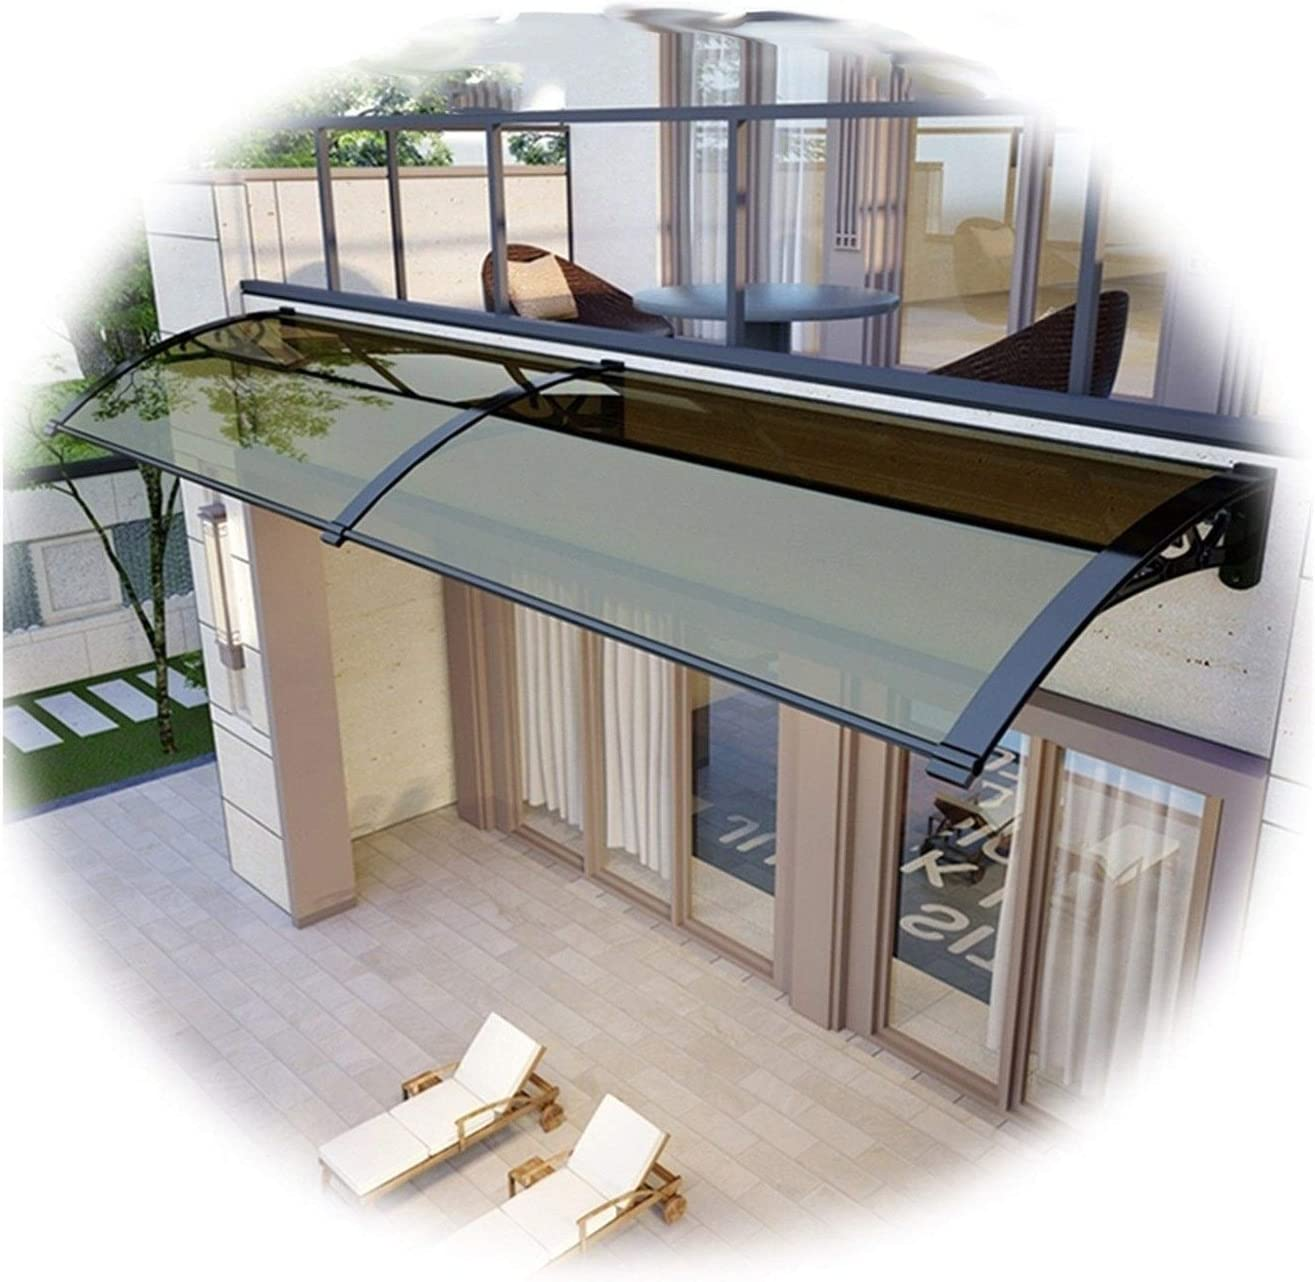 JIANFEI Door Free Shipping New Canopy Window Outdoor Popular brand in the world Polycarbonate Awning Sunshad